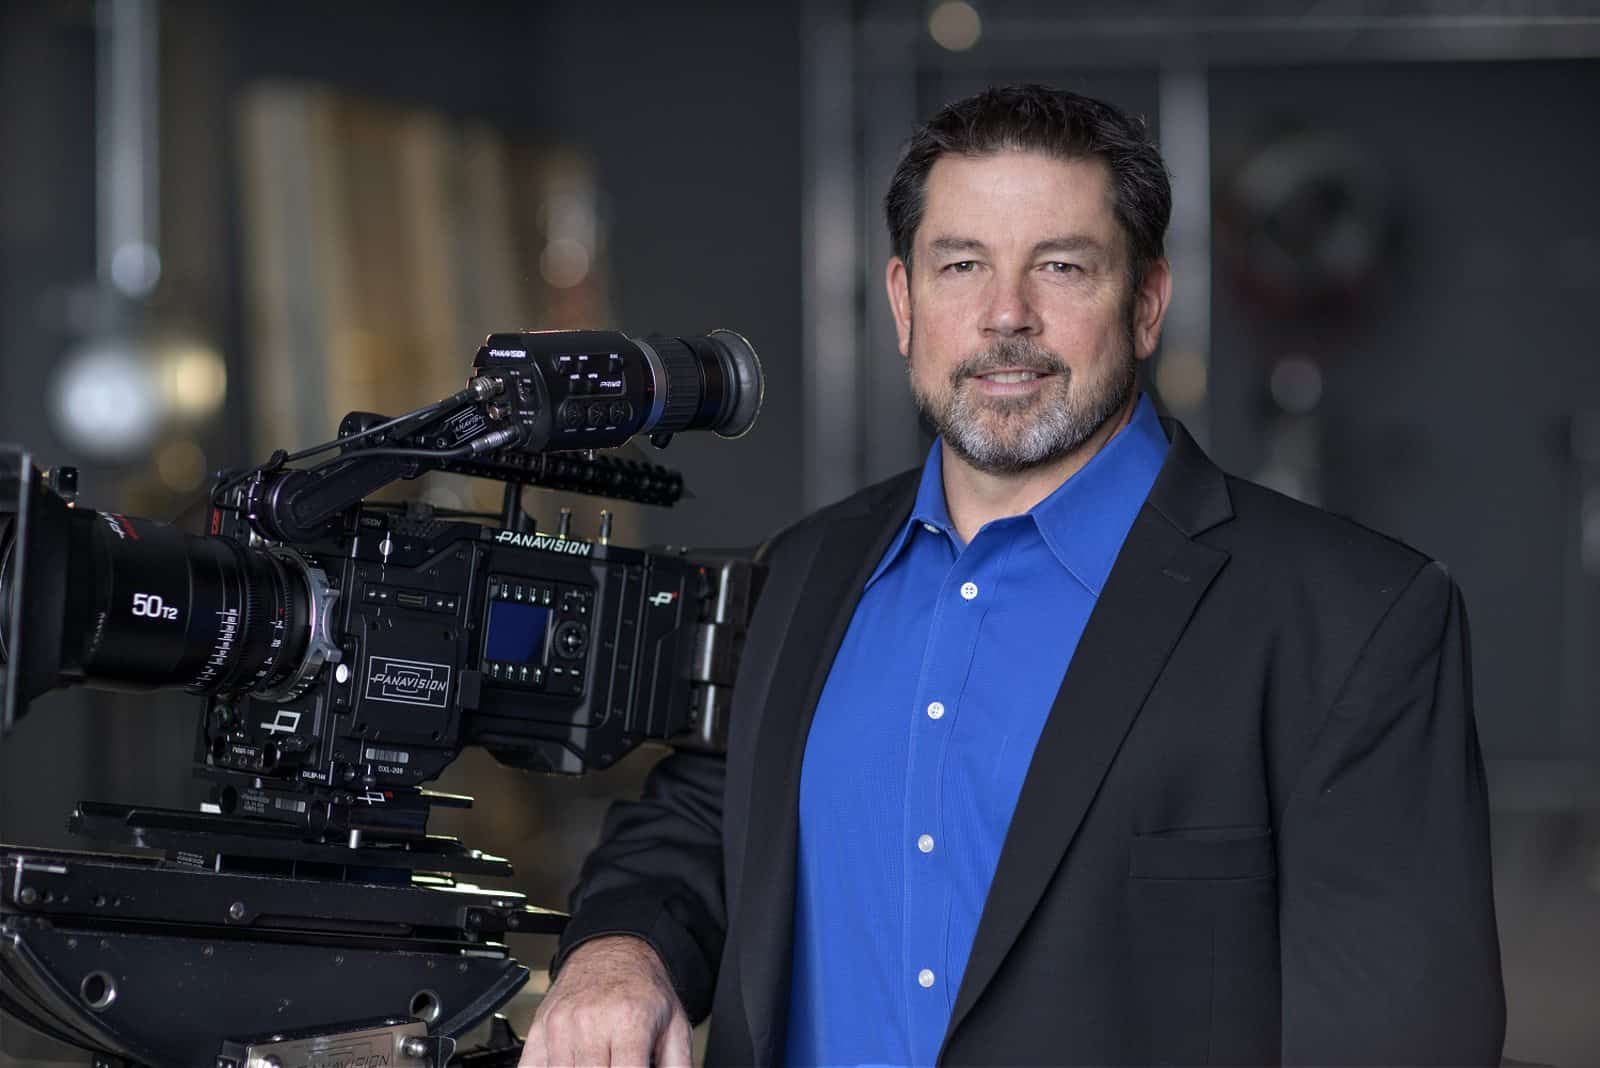 VP and general manager of Panavision Hollywood, Dan Hammond